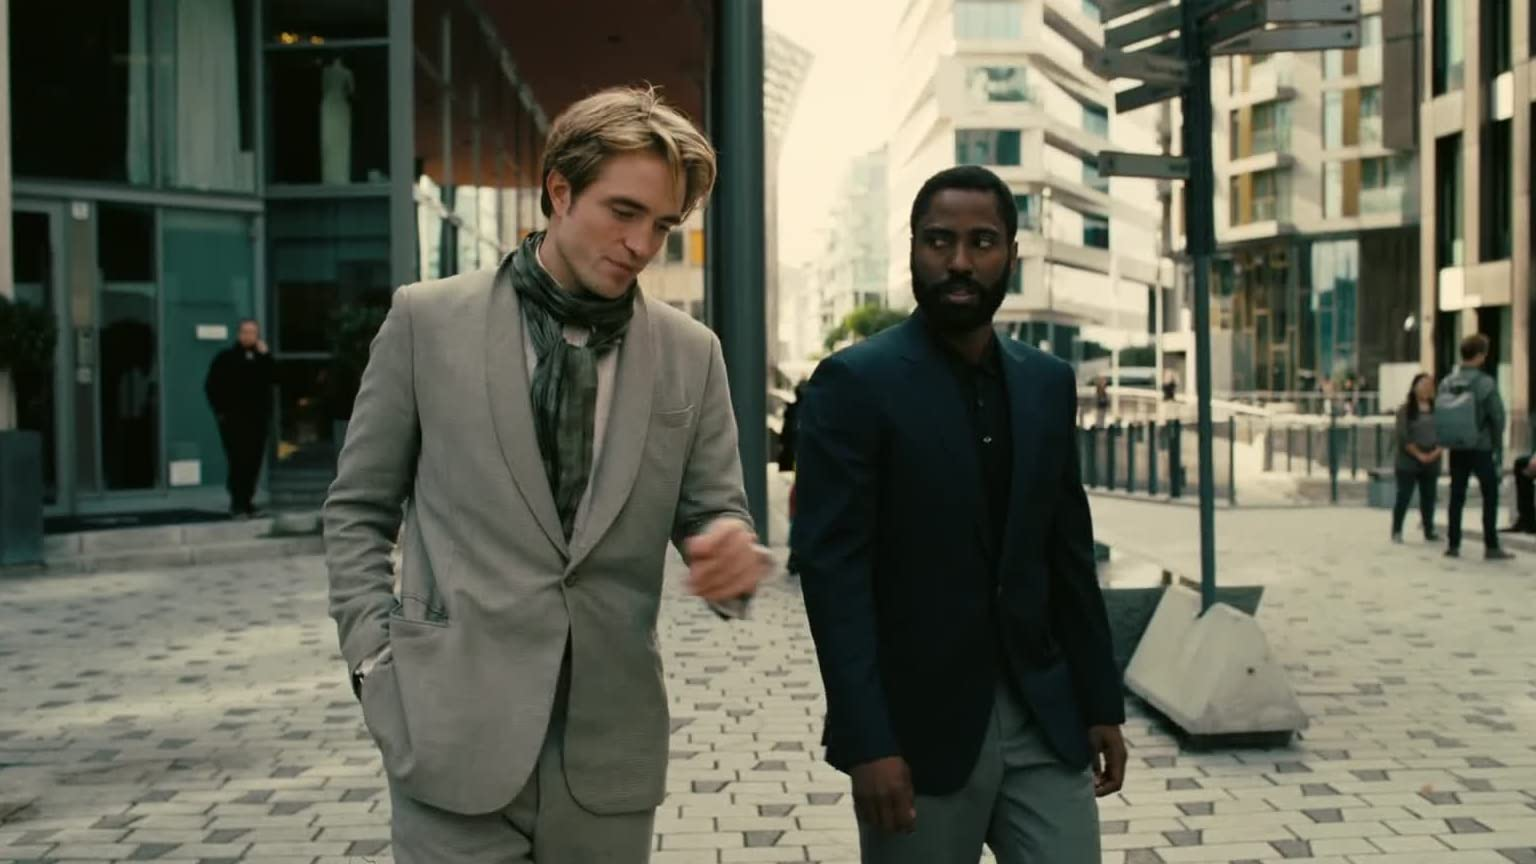 Watch the Trailer for Christopher Nolan's Latest